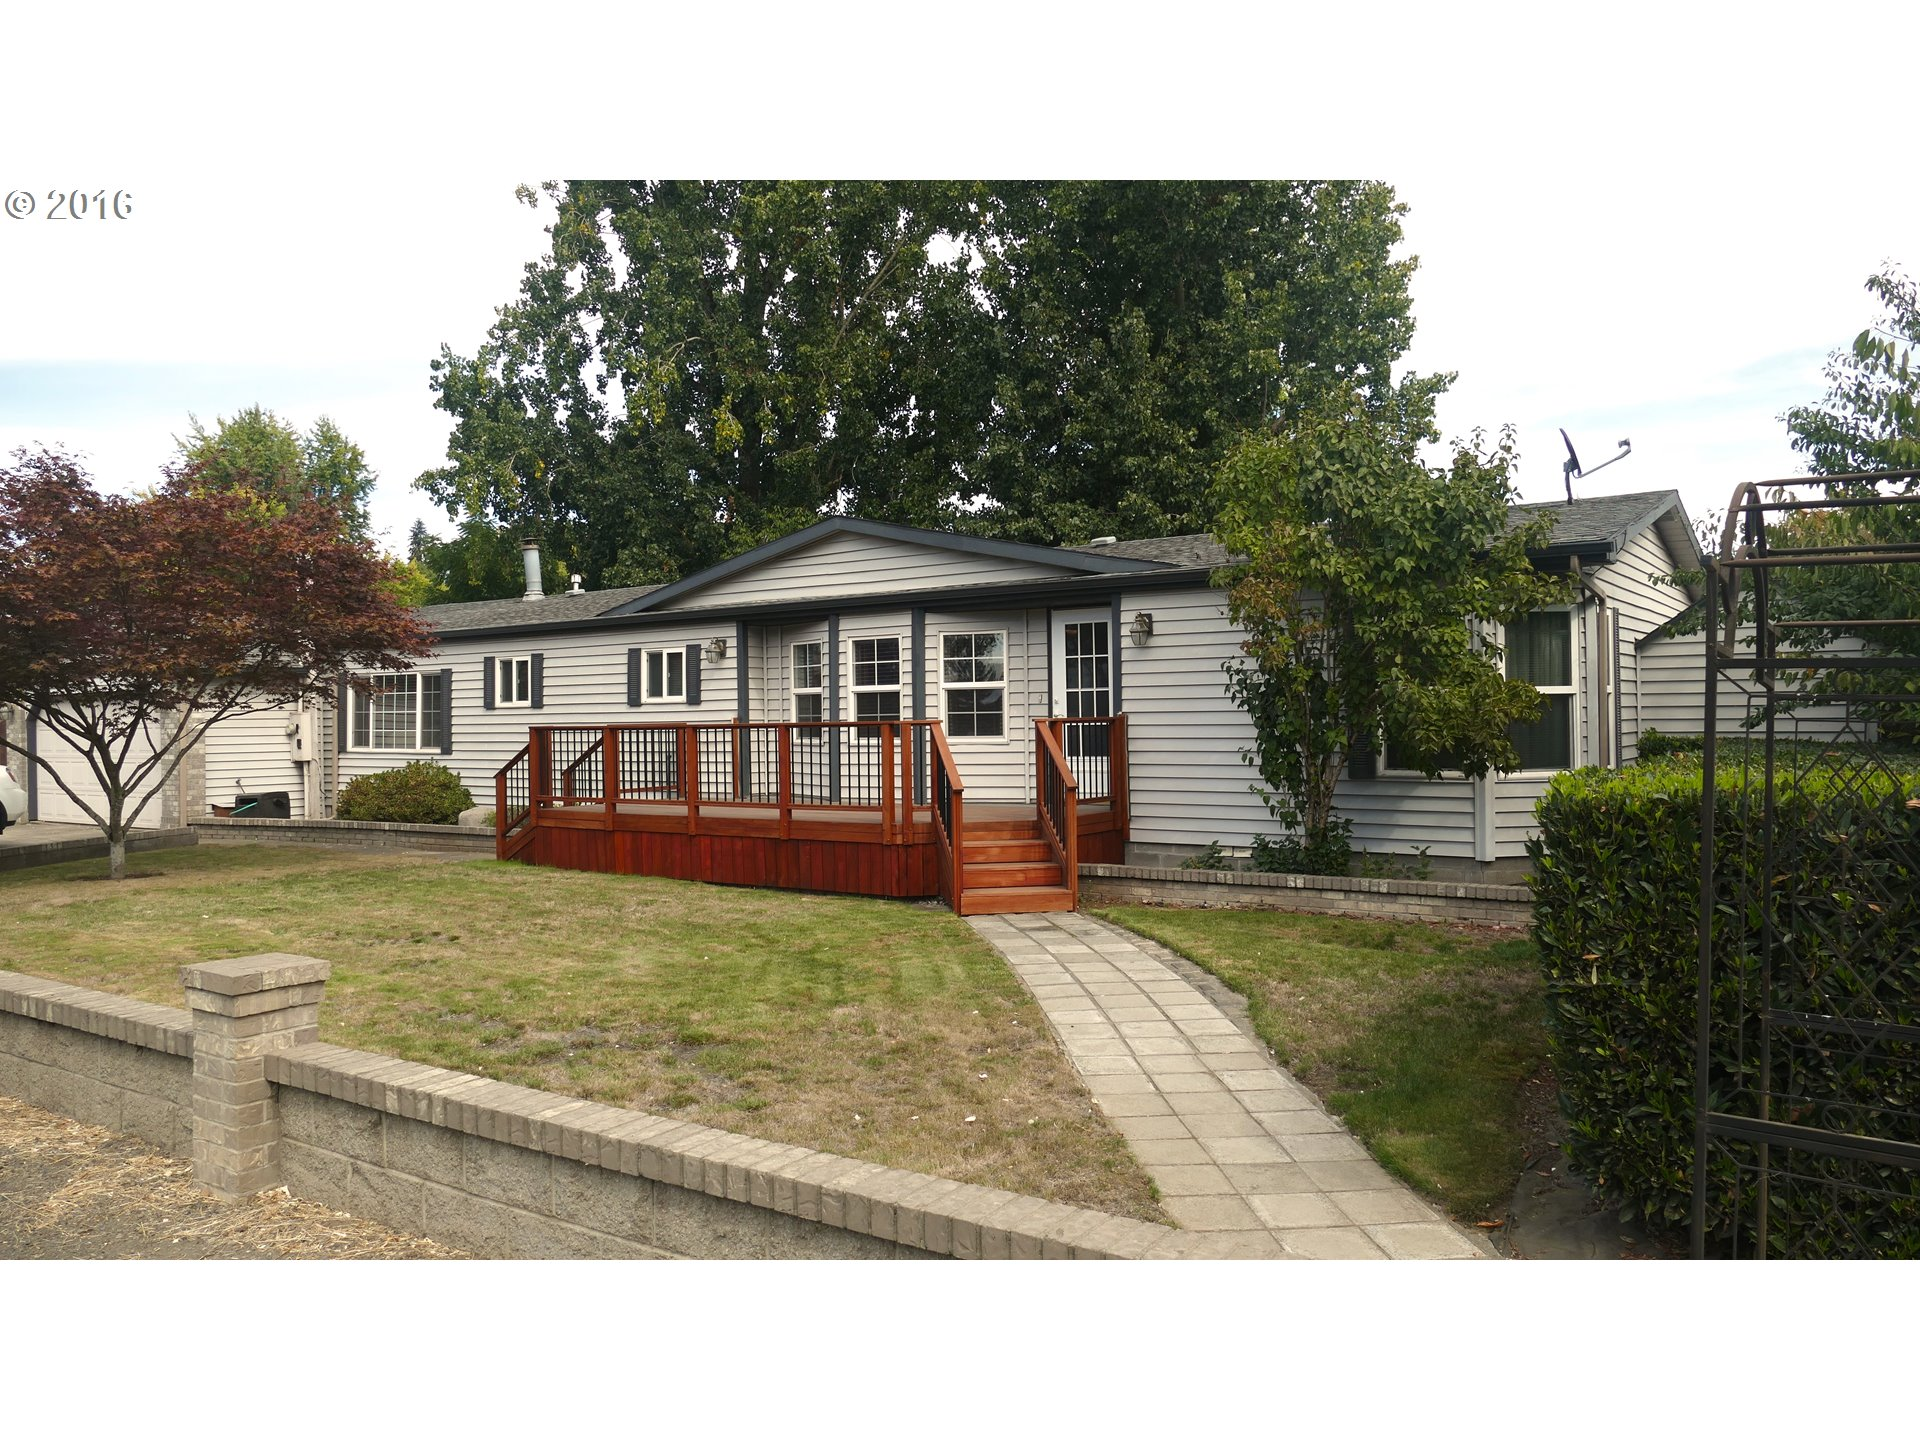 24480 S BARLOW RD, Canby OR 97013